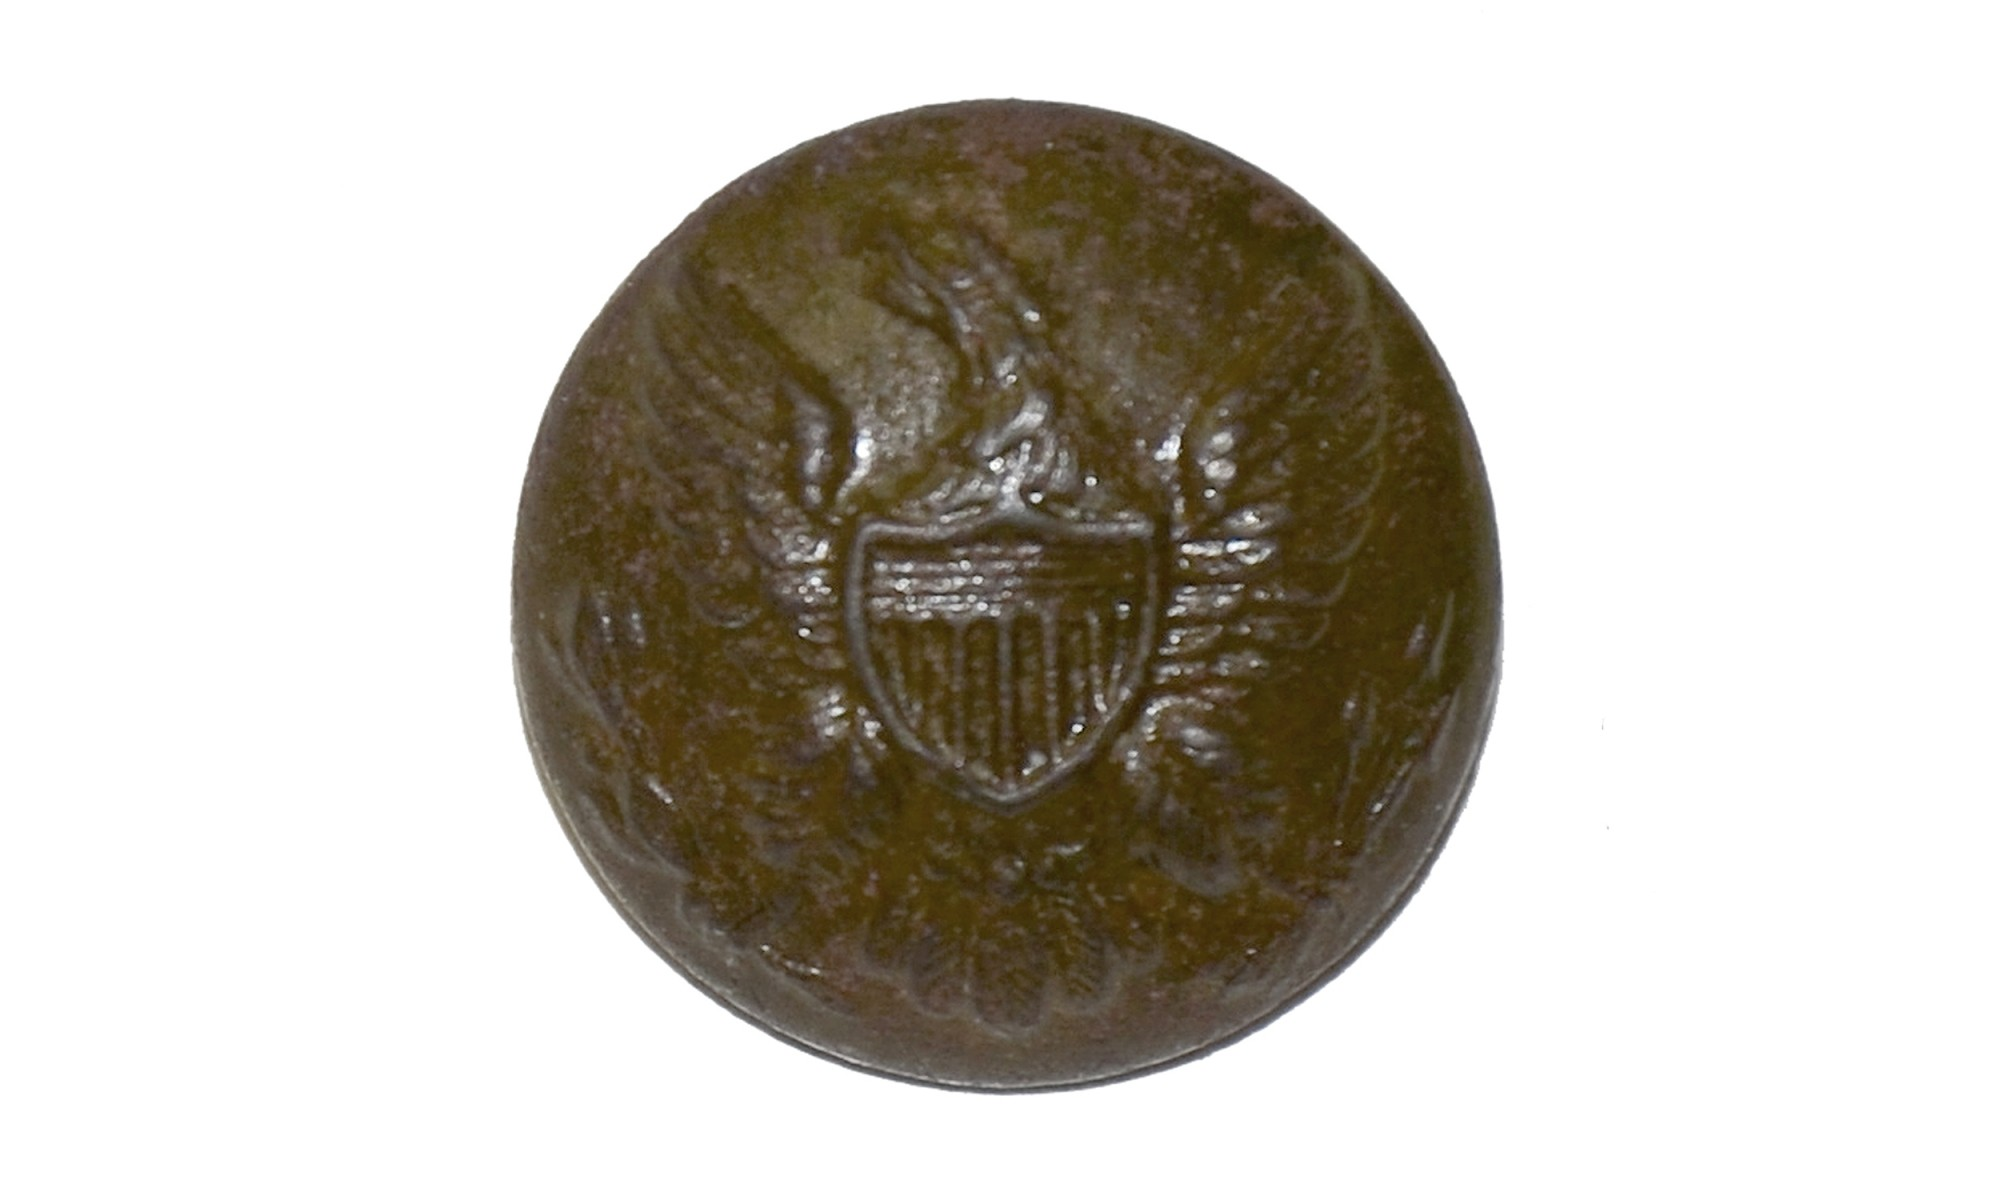 UNION GENERAL SERVICE EAGLE COAT BUTTON FROM THE MAC MASON COLLECTION